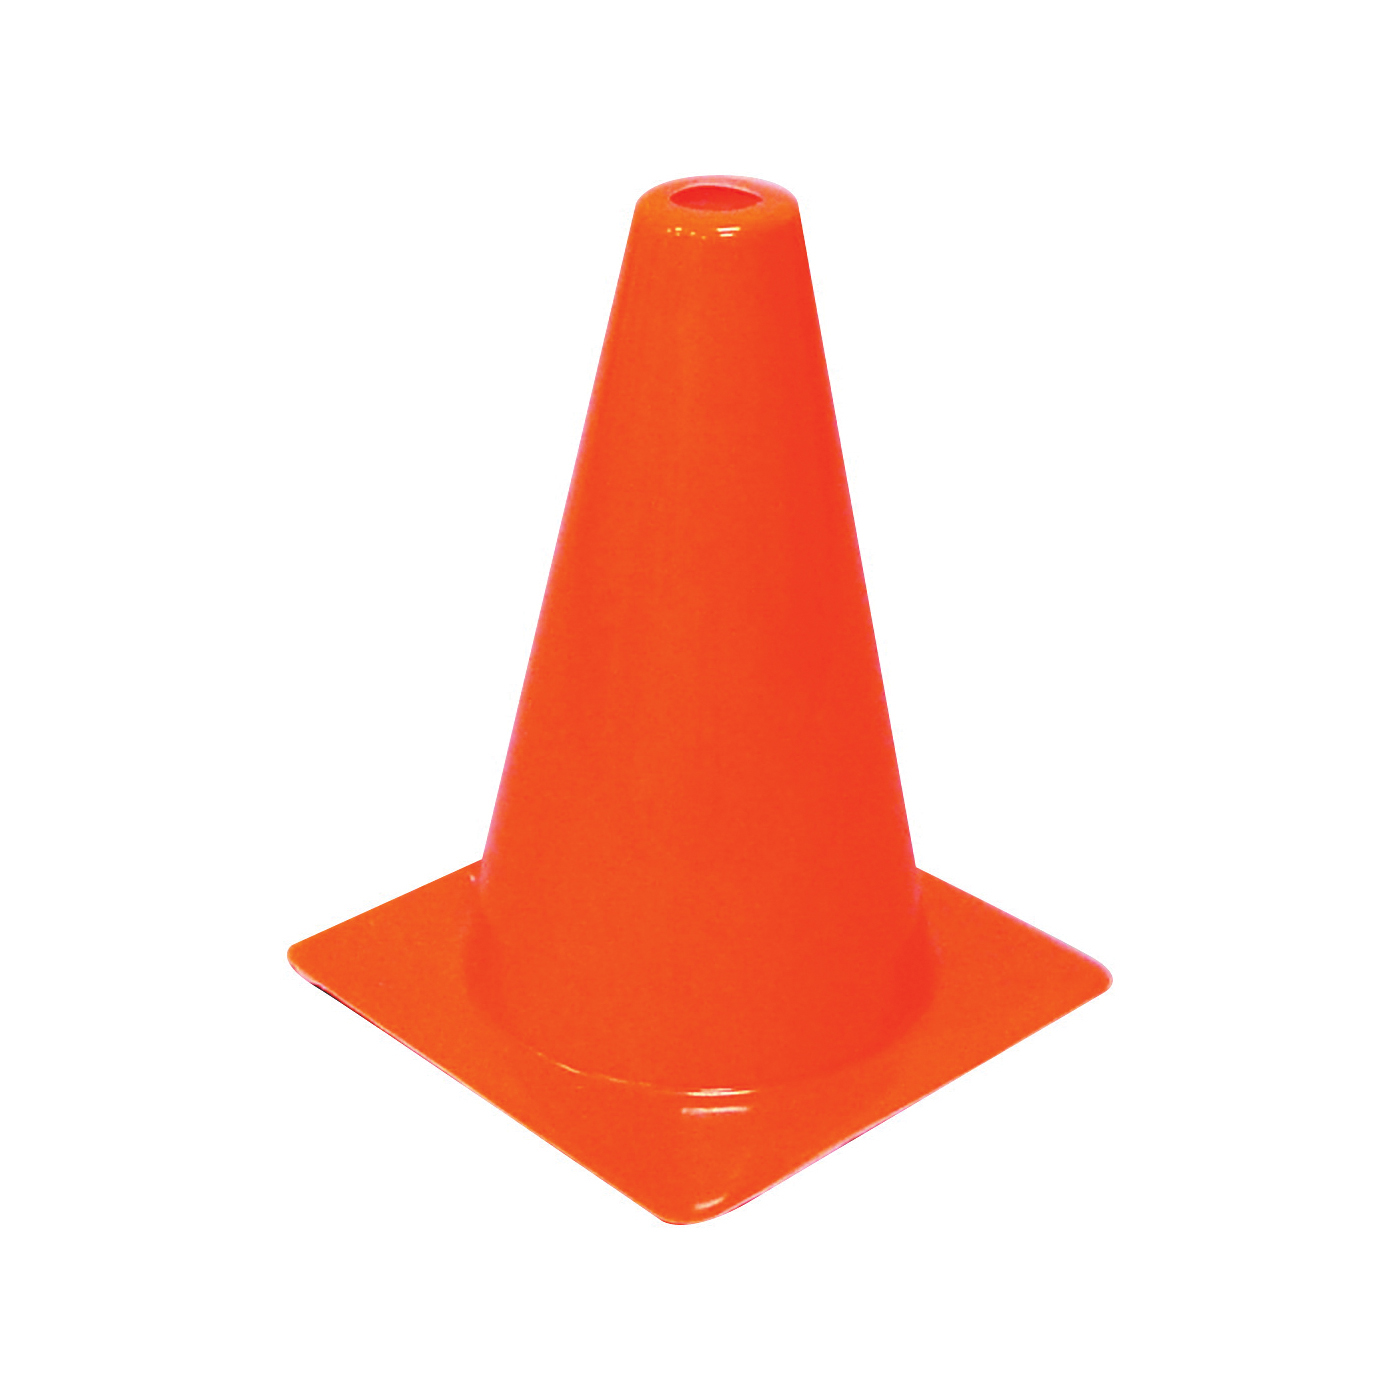 Picture of HY-KO SC-12 Traffic Safety Cone, 12 in H Cone, Vinyl Cone, Fluorescent Orange Cone